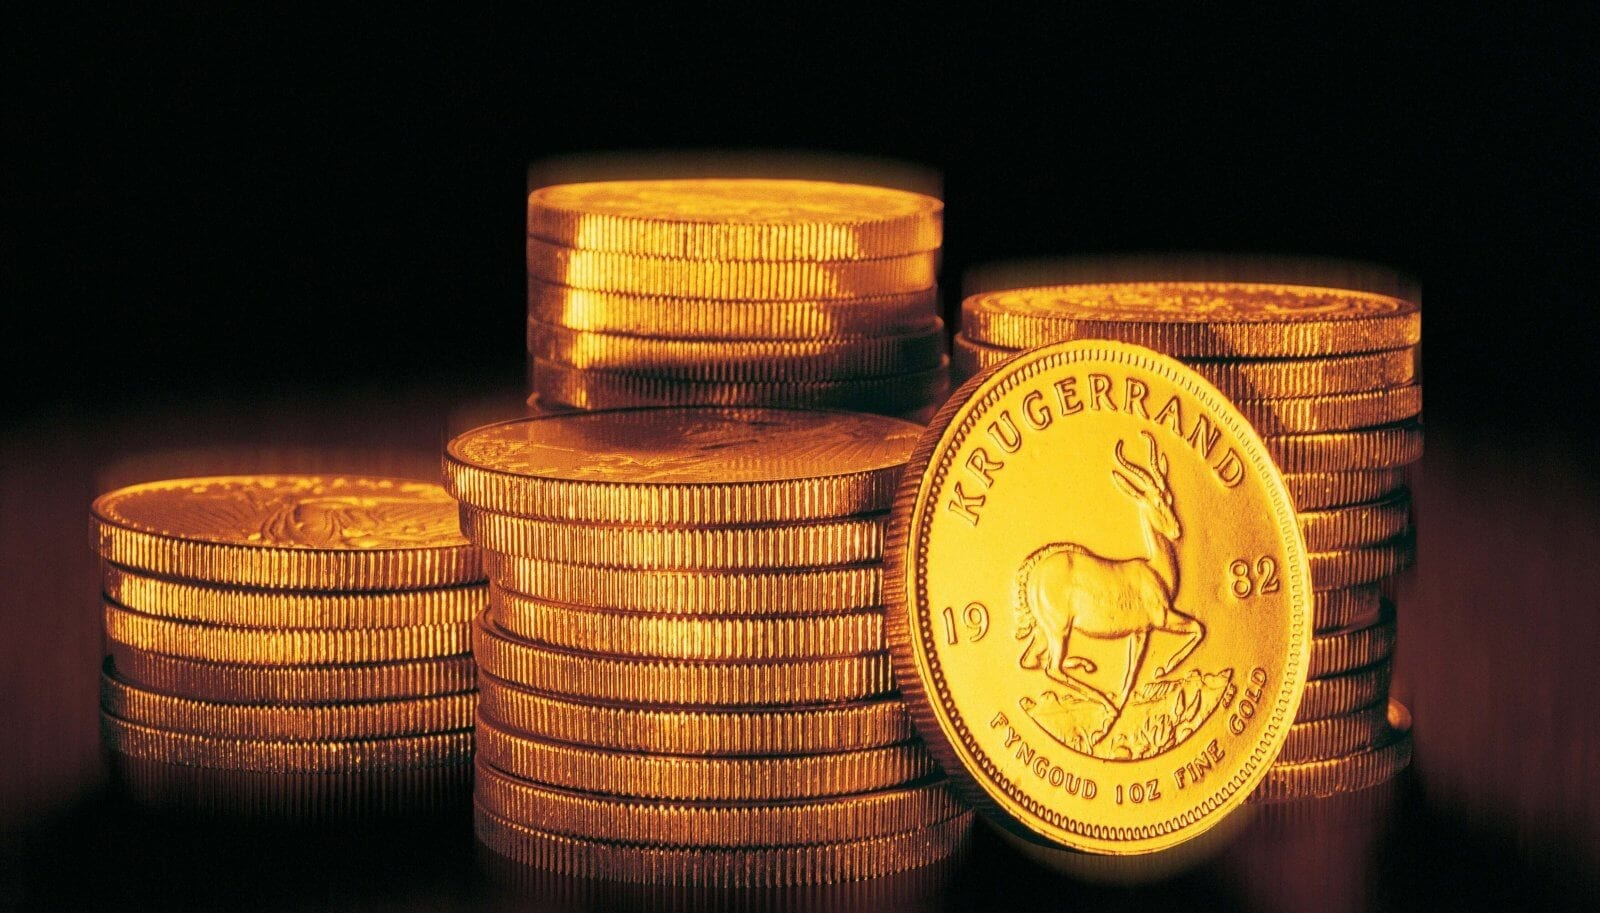 Gold investment coins include foreign coins such as the Krugerrand